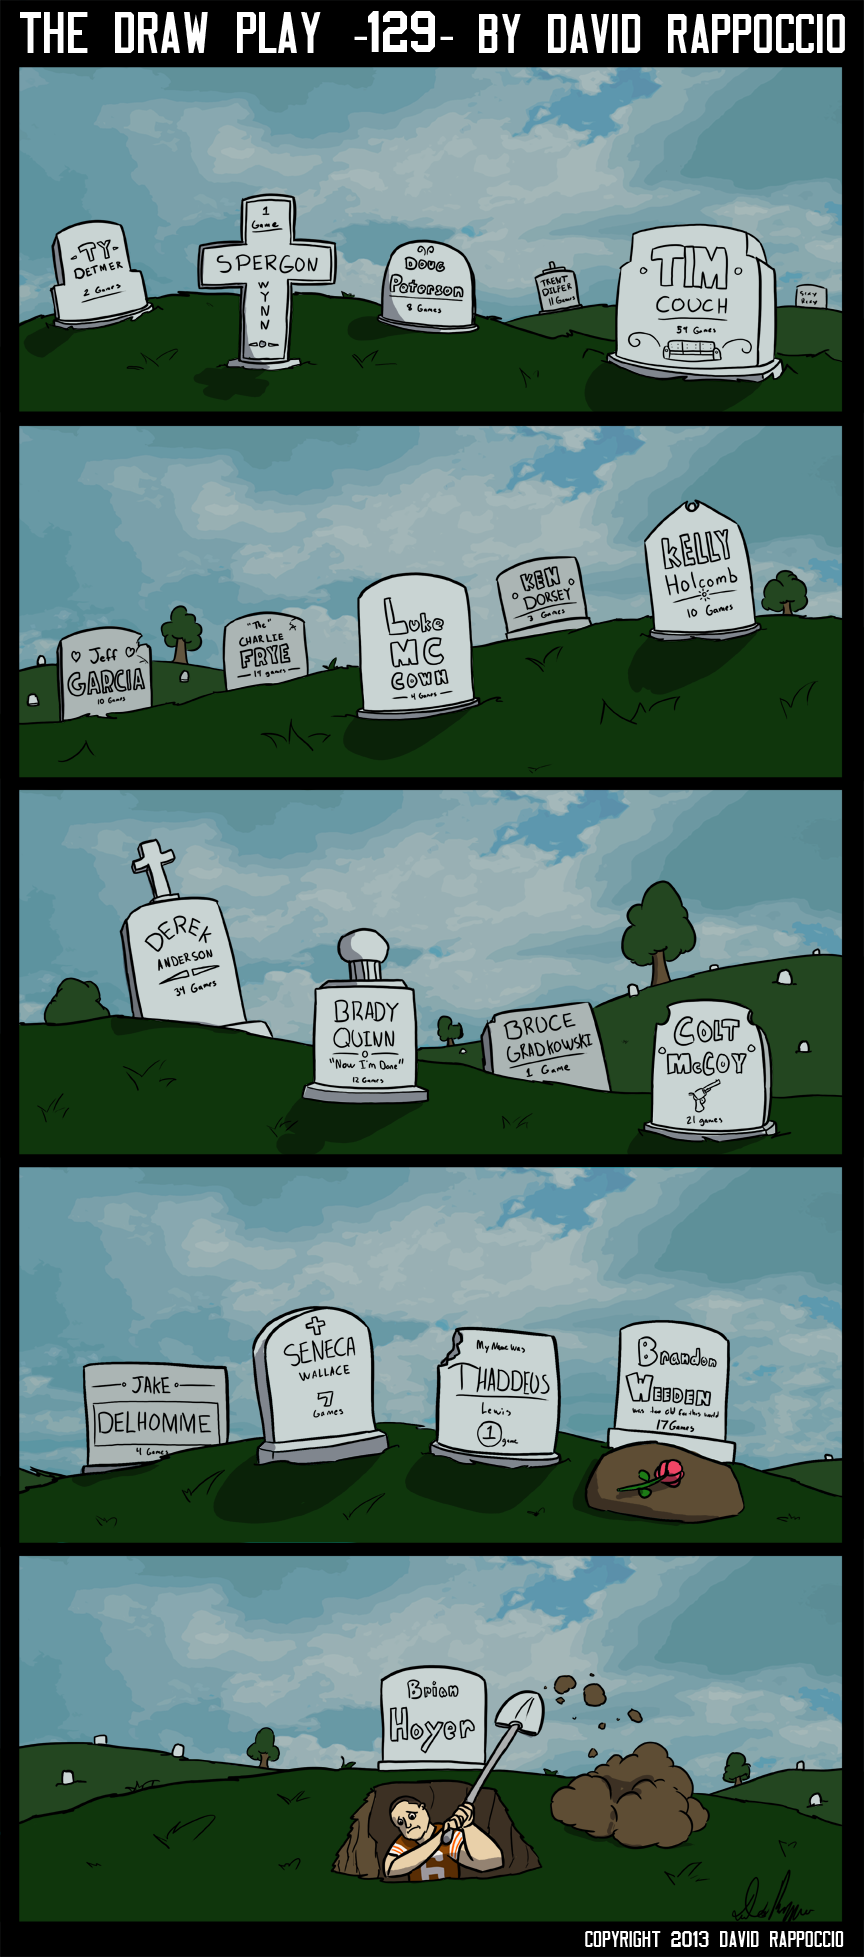 I was tempted to make the headstones all toilets, but felt that was a bit overboard for my special devoted week of making jokes about how horrible it is to be a Cleveland Browns fan